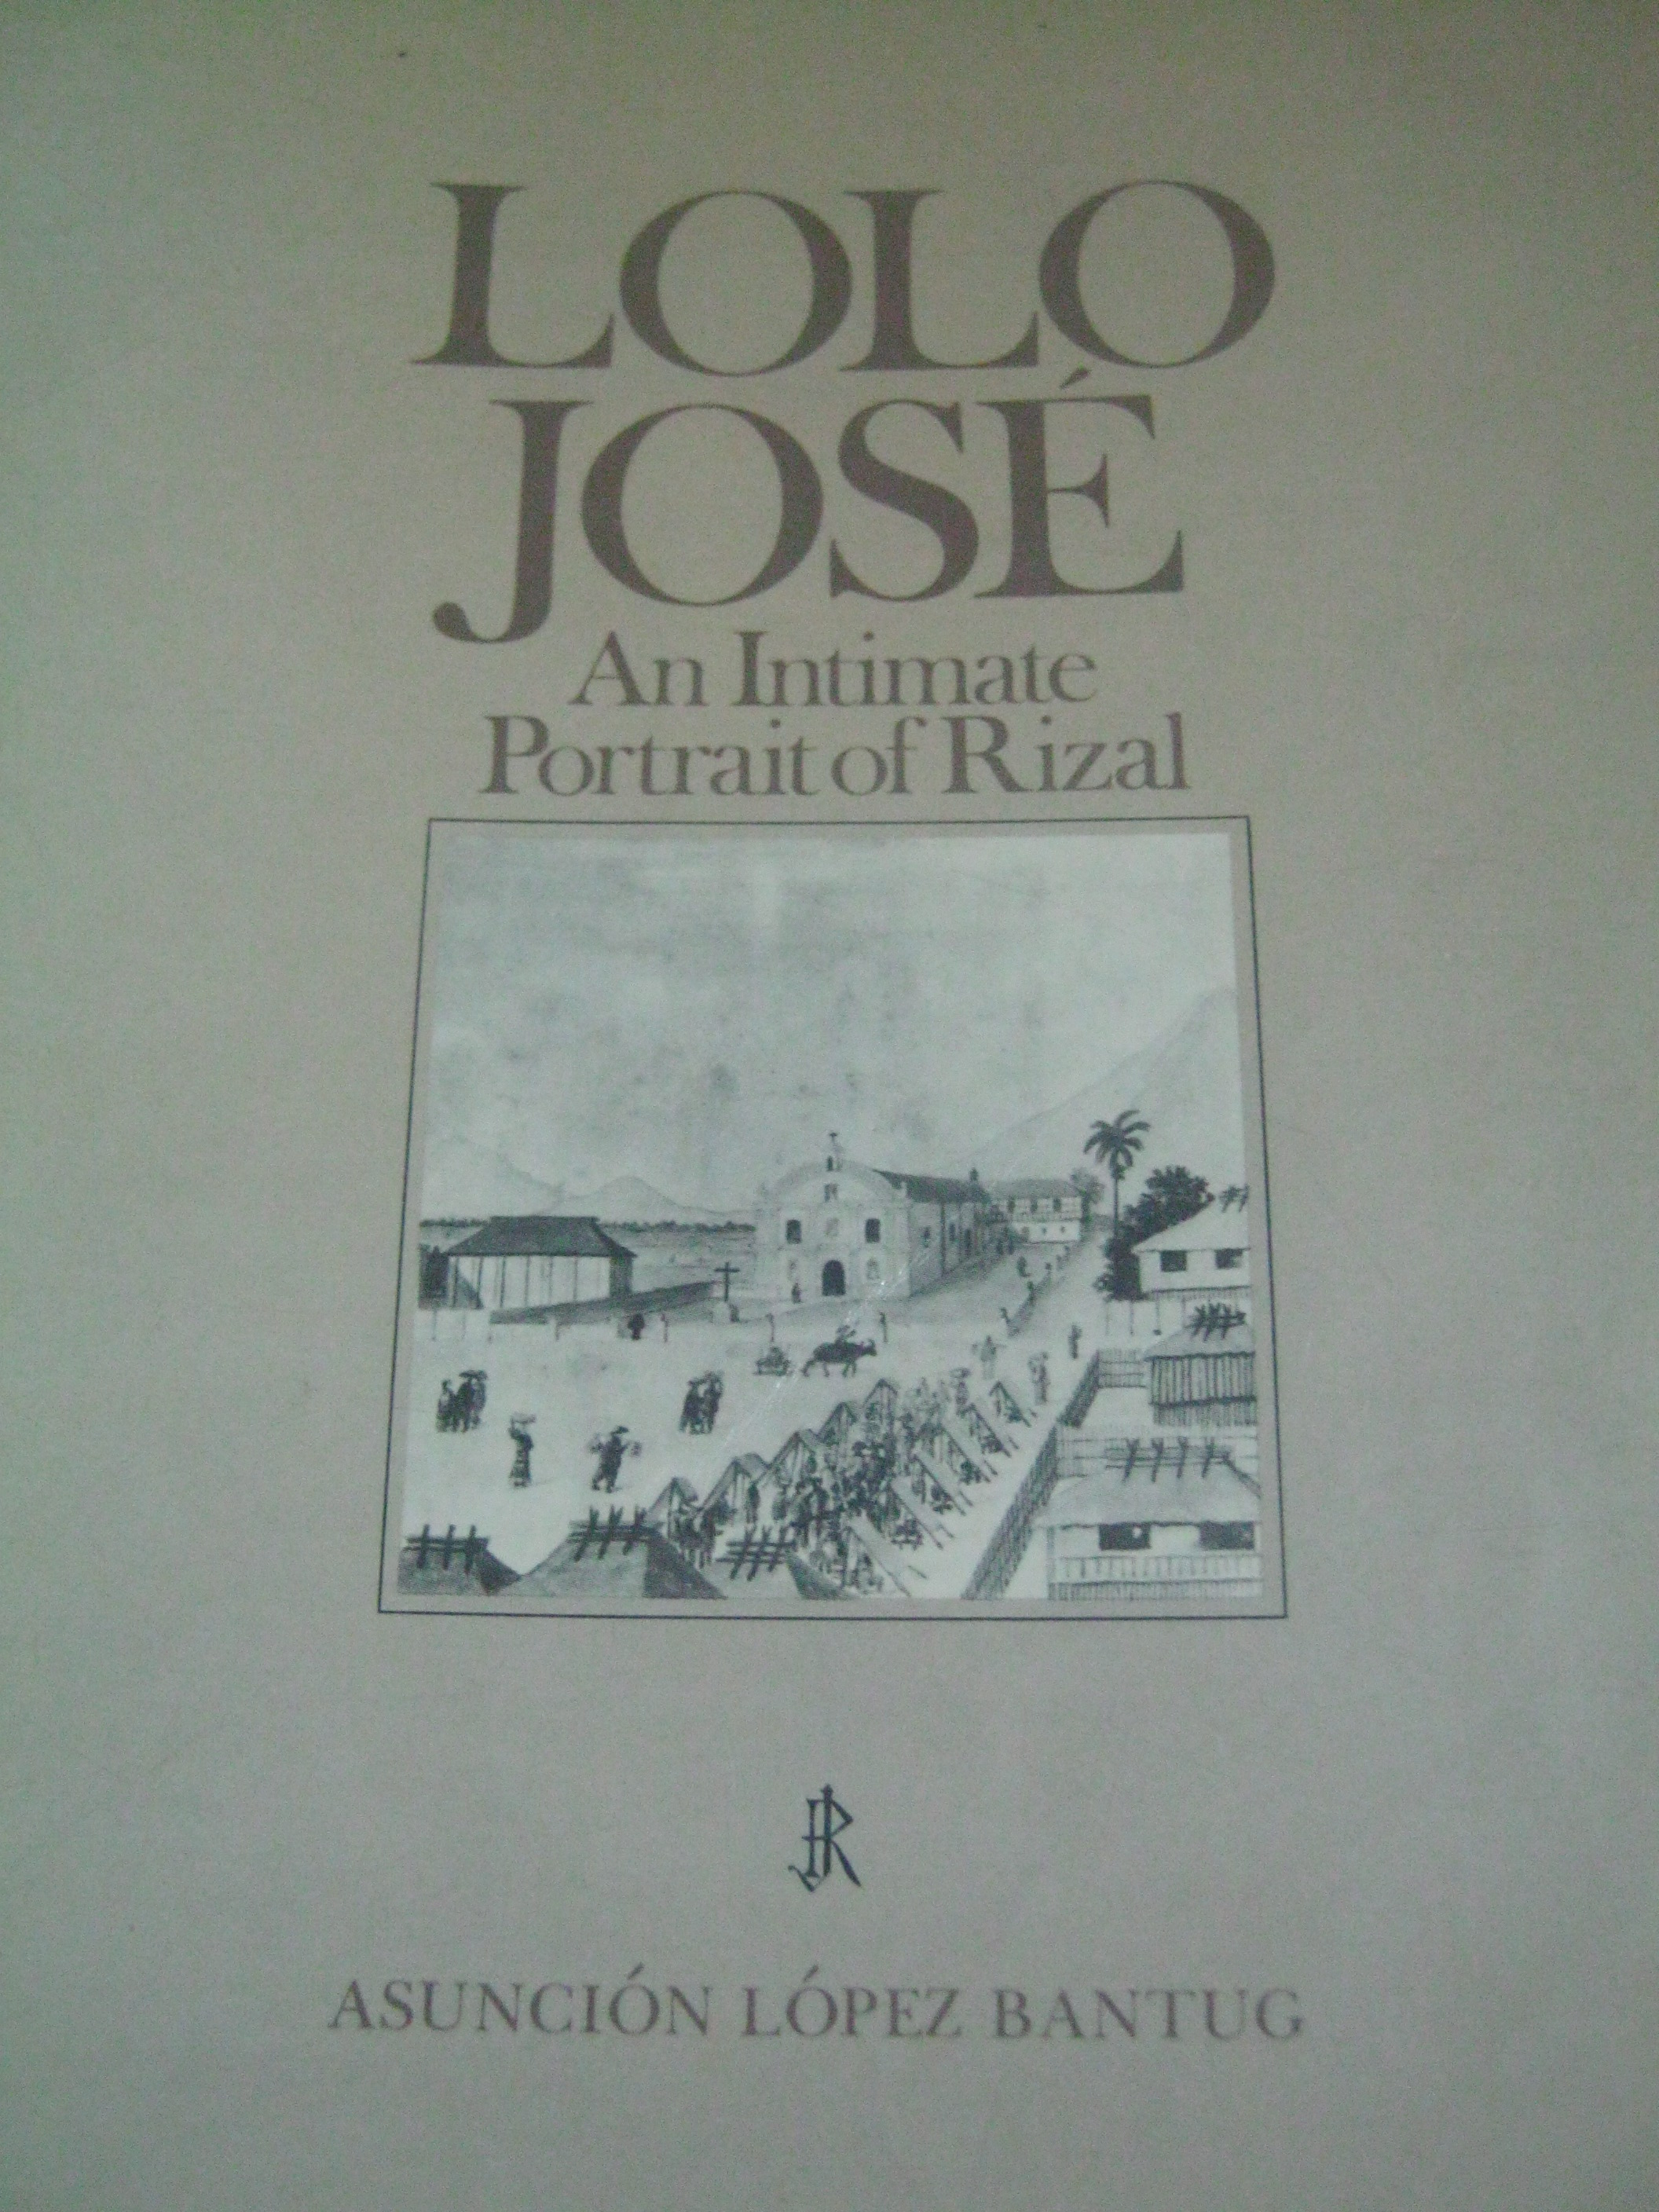 13 Lolo José An Intimate Portrait of Rizal